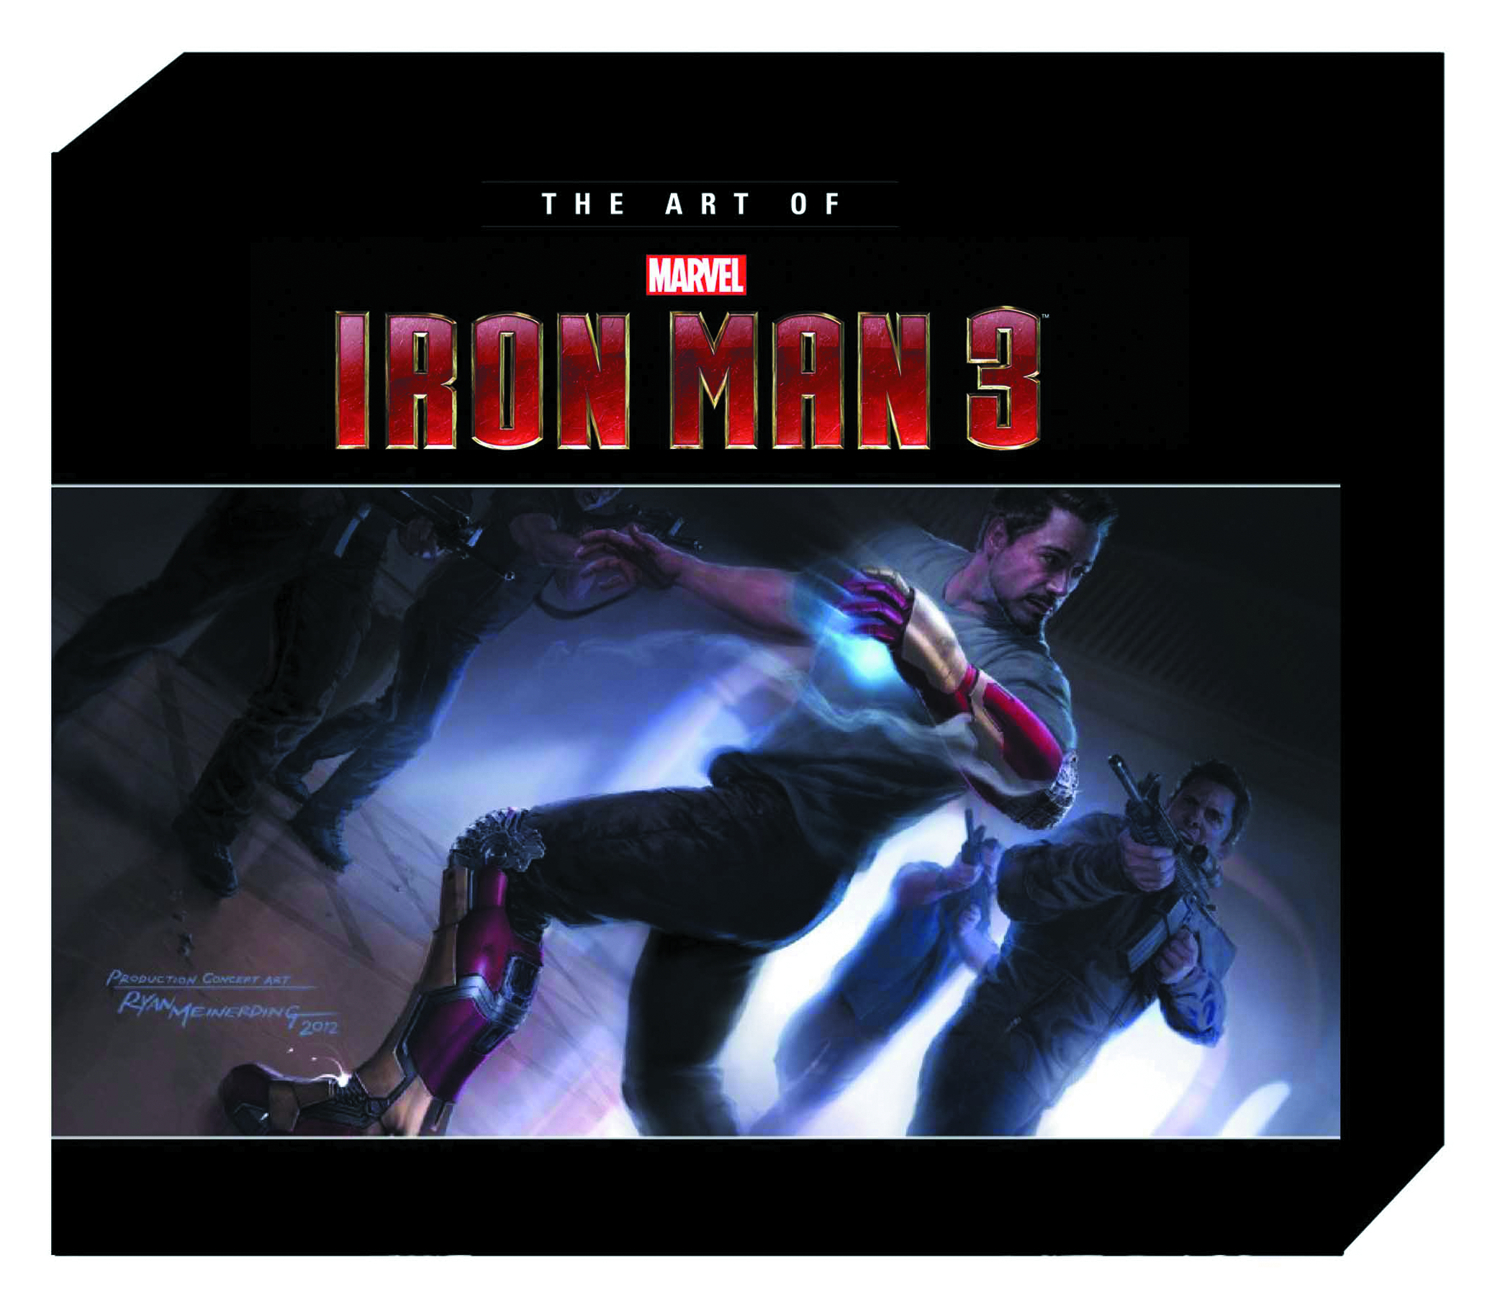 MARVELS IRON MAN 3 SLIPCASE HC ART OF MOVIE